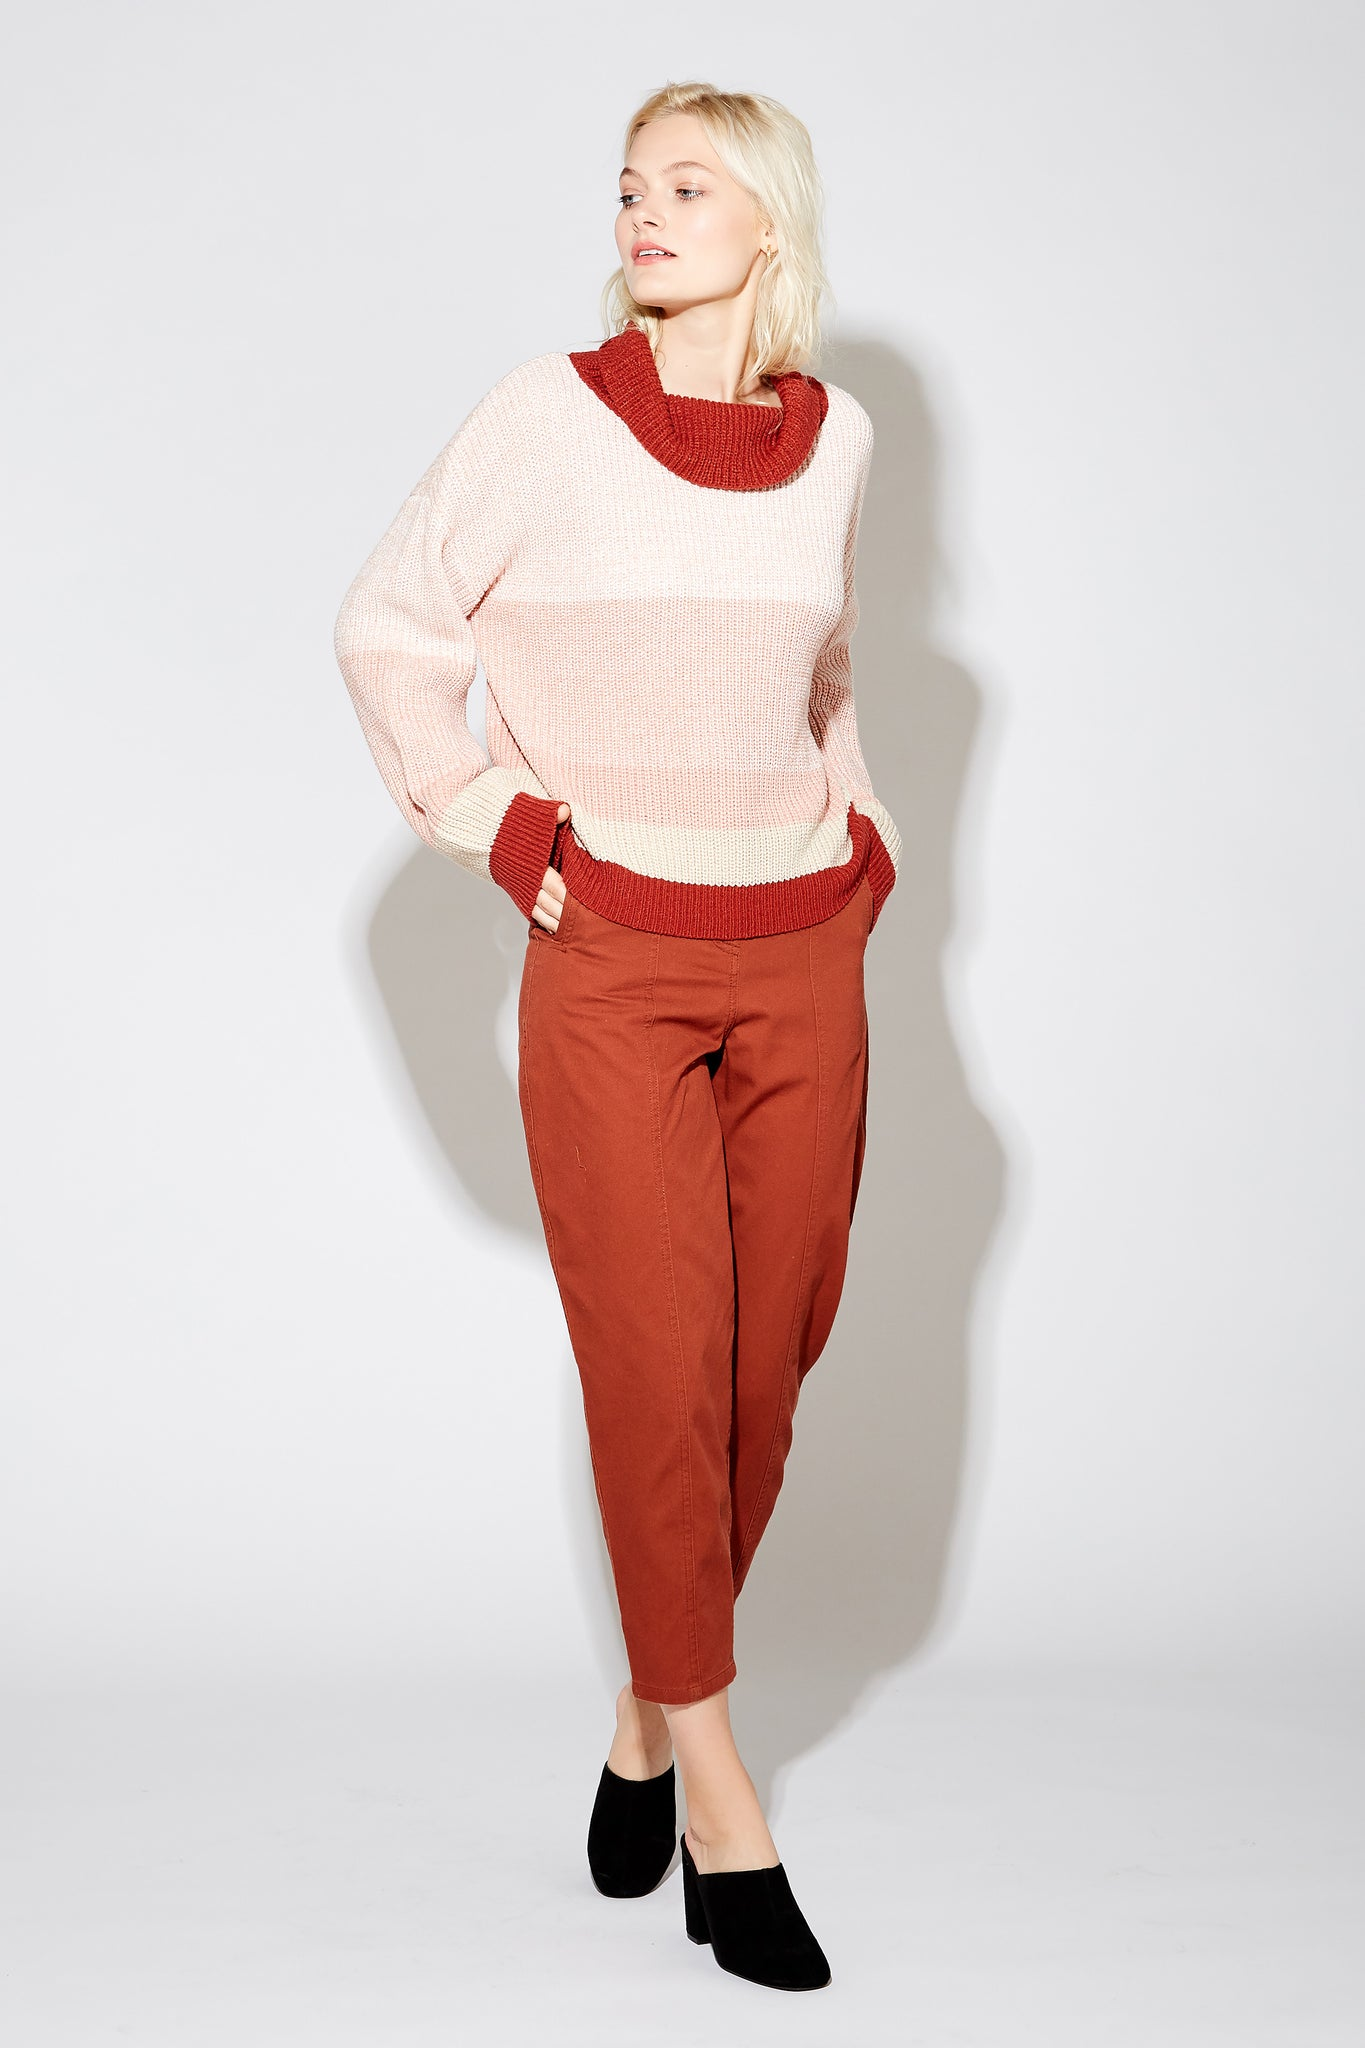 Nathalee Mock Sweater - Bossanova Multi